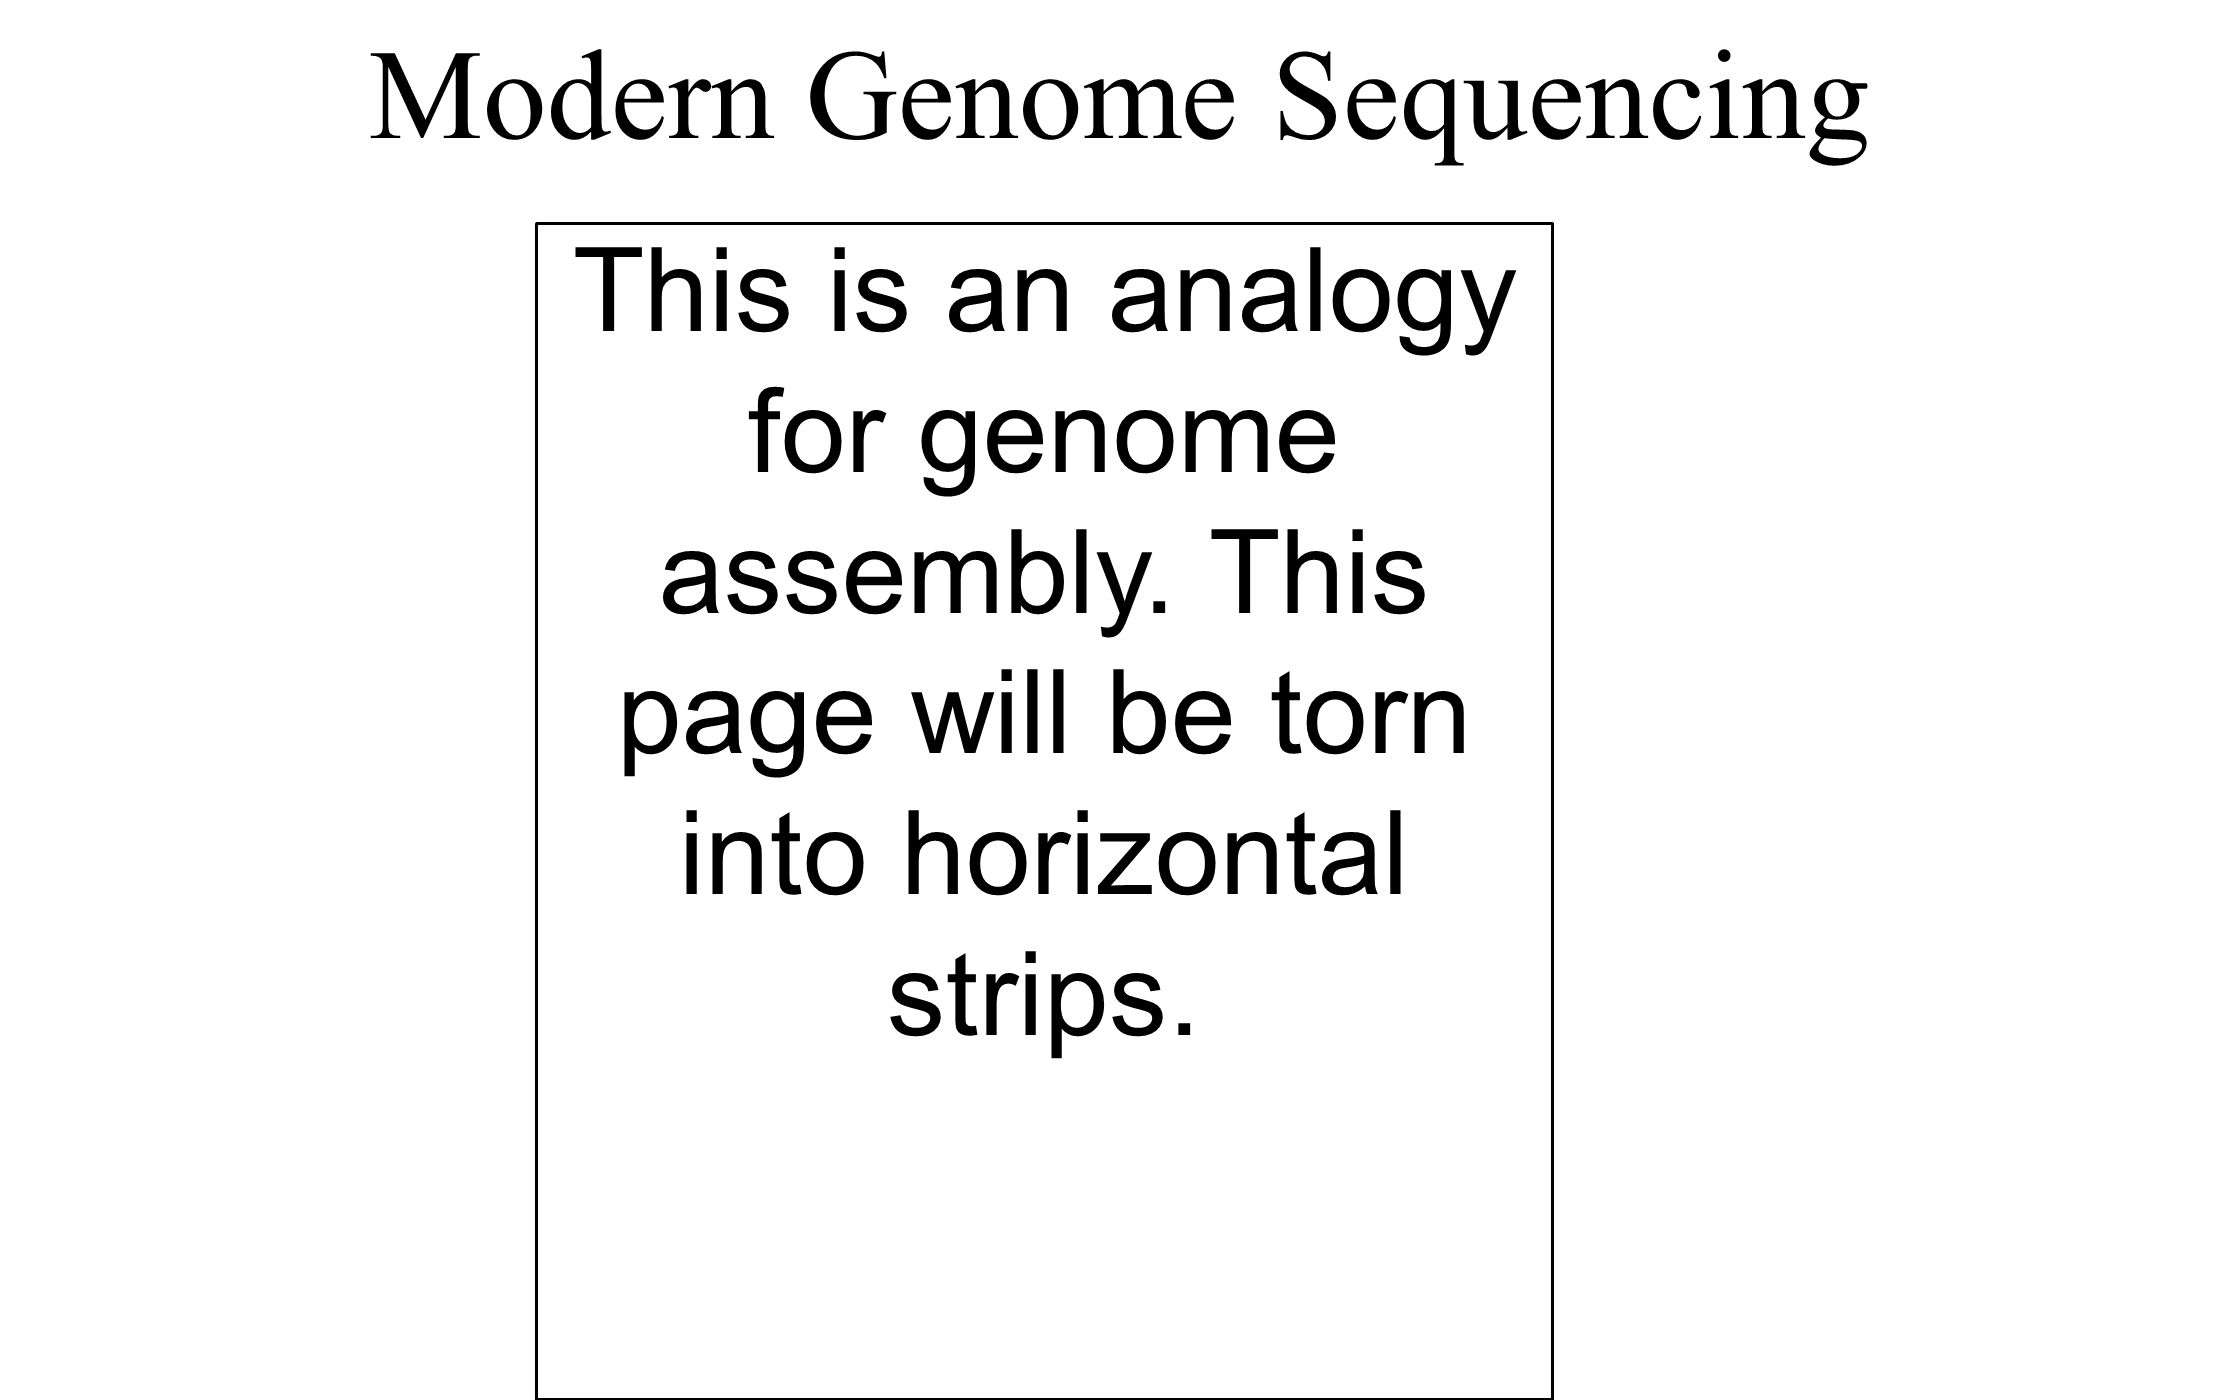 Modern Genome Sequencing